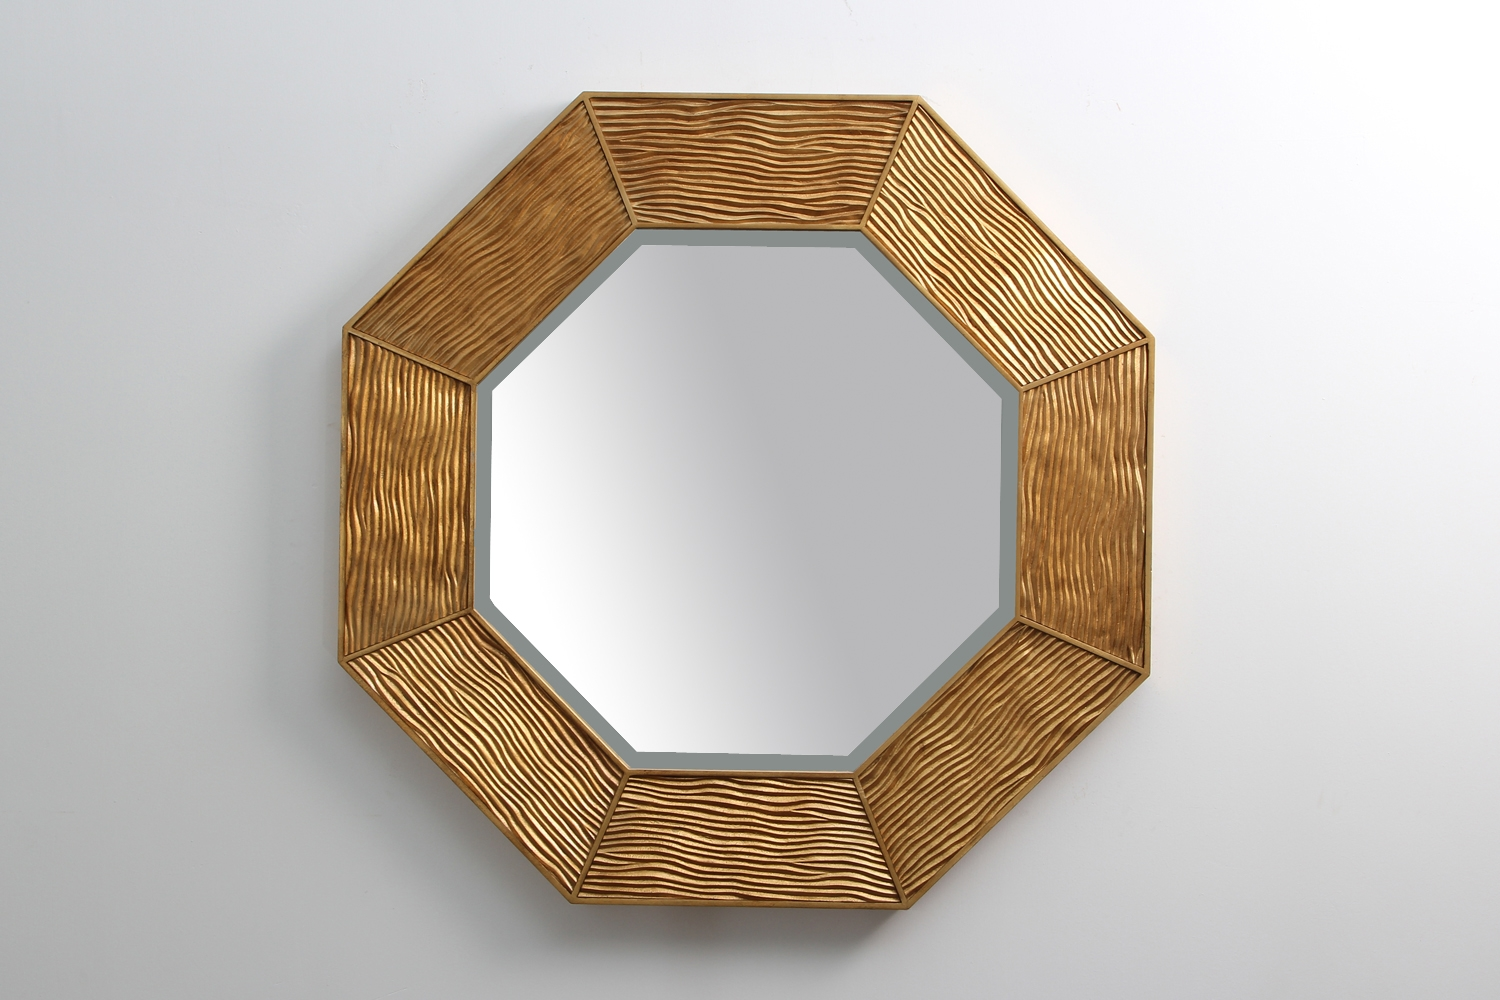 Lennox Mirror Gold Forwood Design Regarding Modern Gold Mirror (Image 9 of 15)